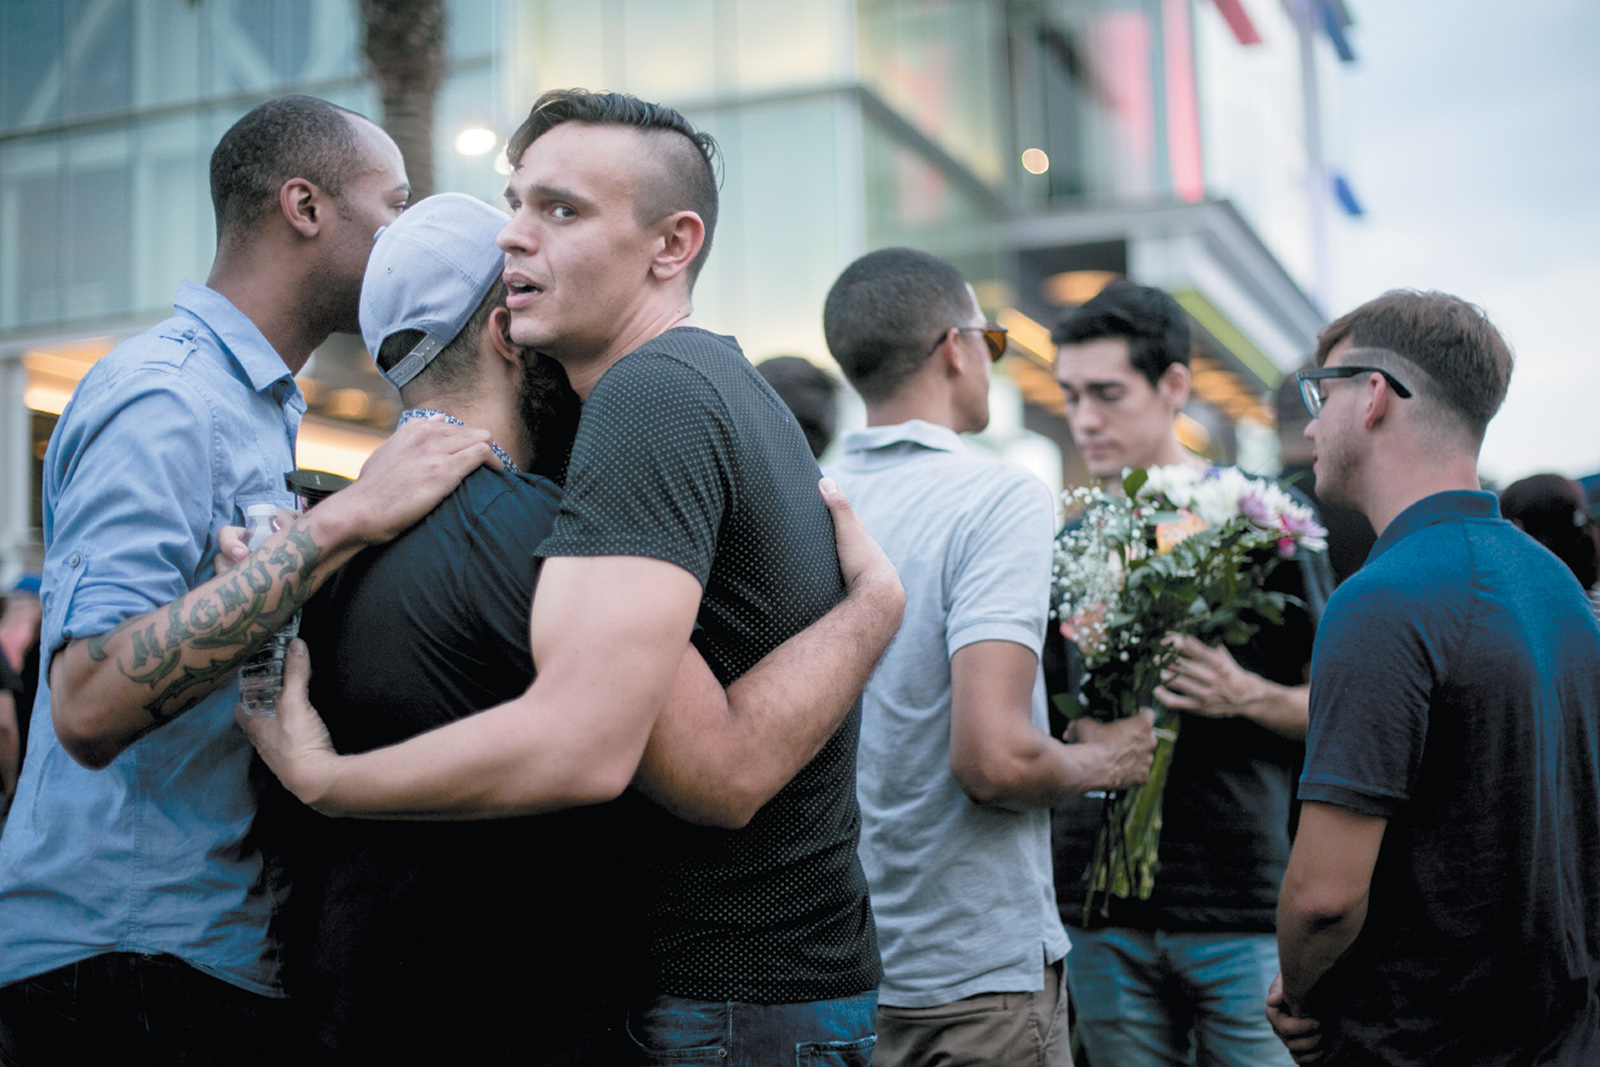 A vigil for the victims of the Pulse nightclub shooting, Orlando, Florida, June 13, 2016